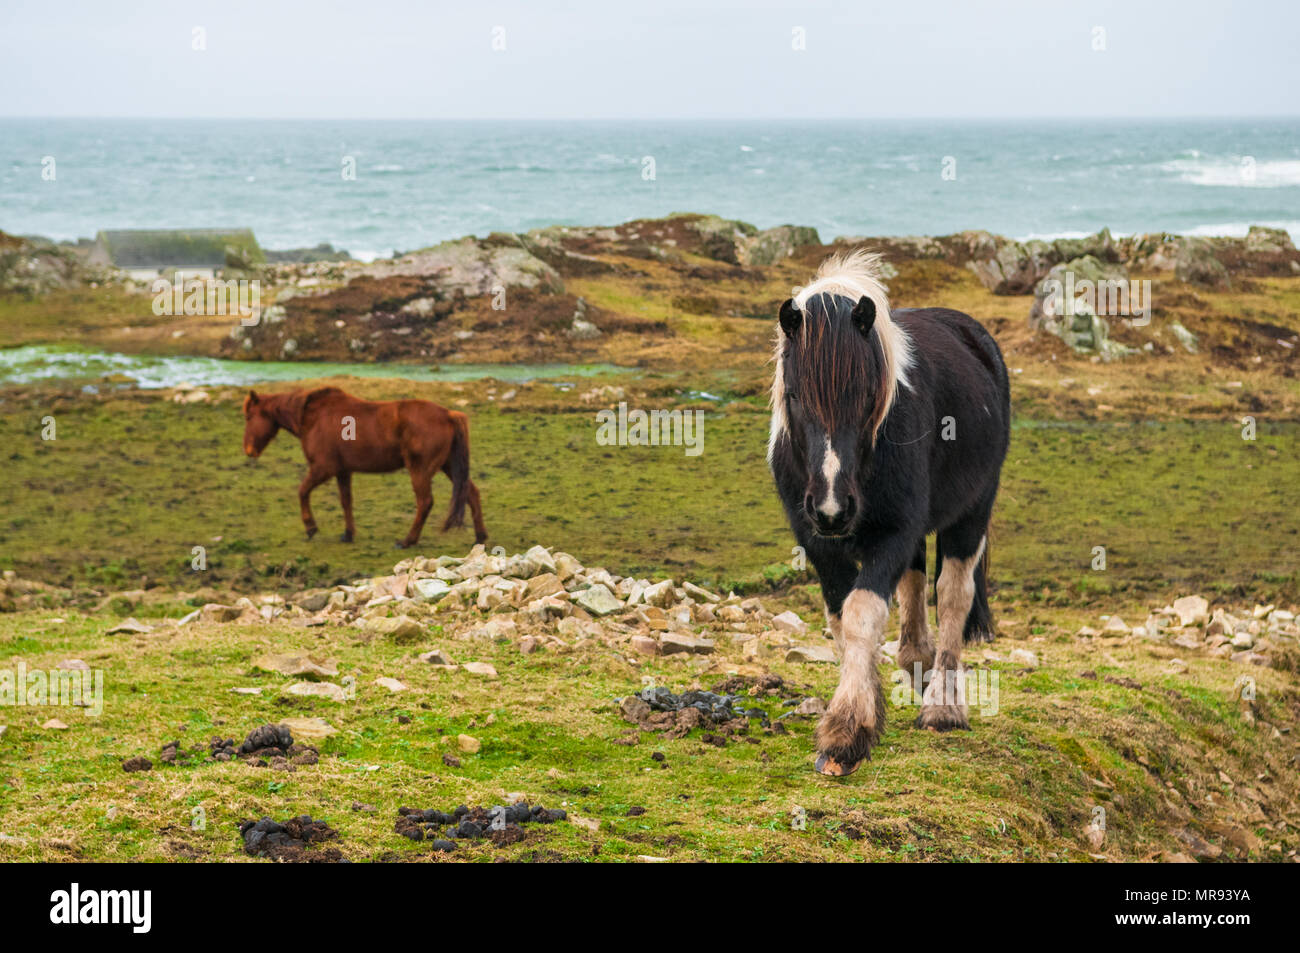 Horses on the landscape in Donegal, Ireland Stock Photo